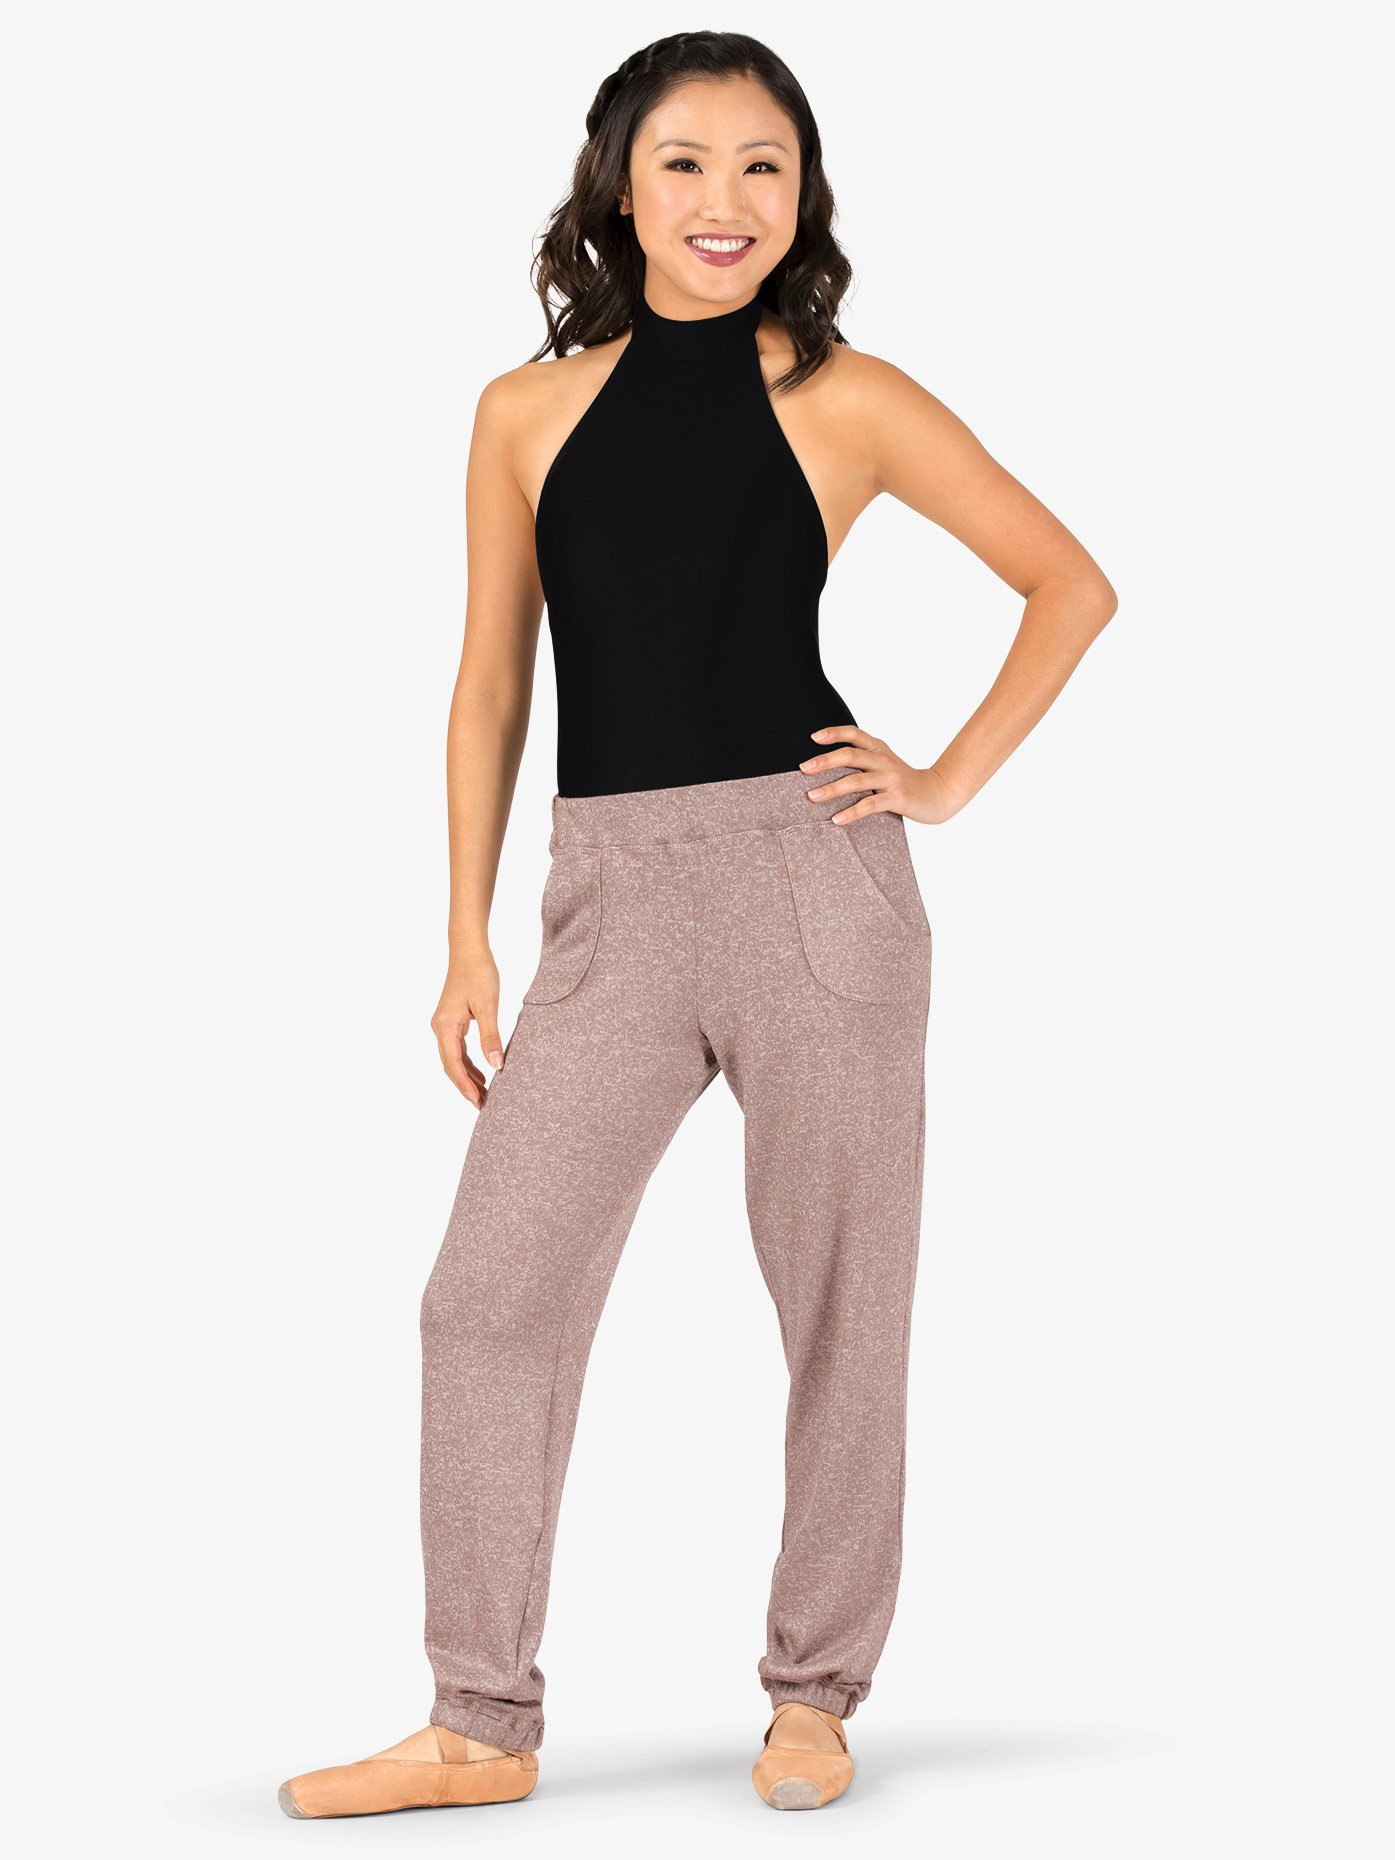 Natalie Womens Cuffed Warm Up Pants N9085